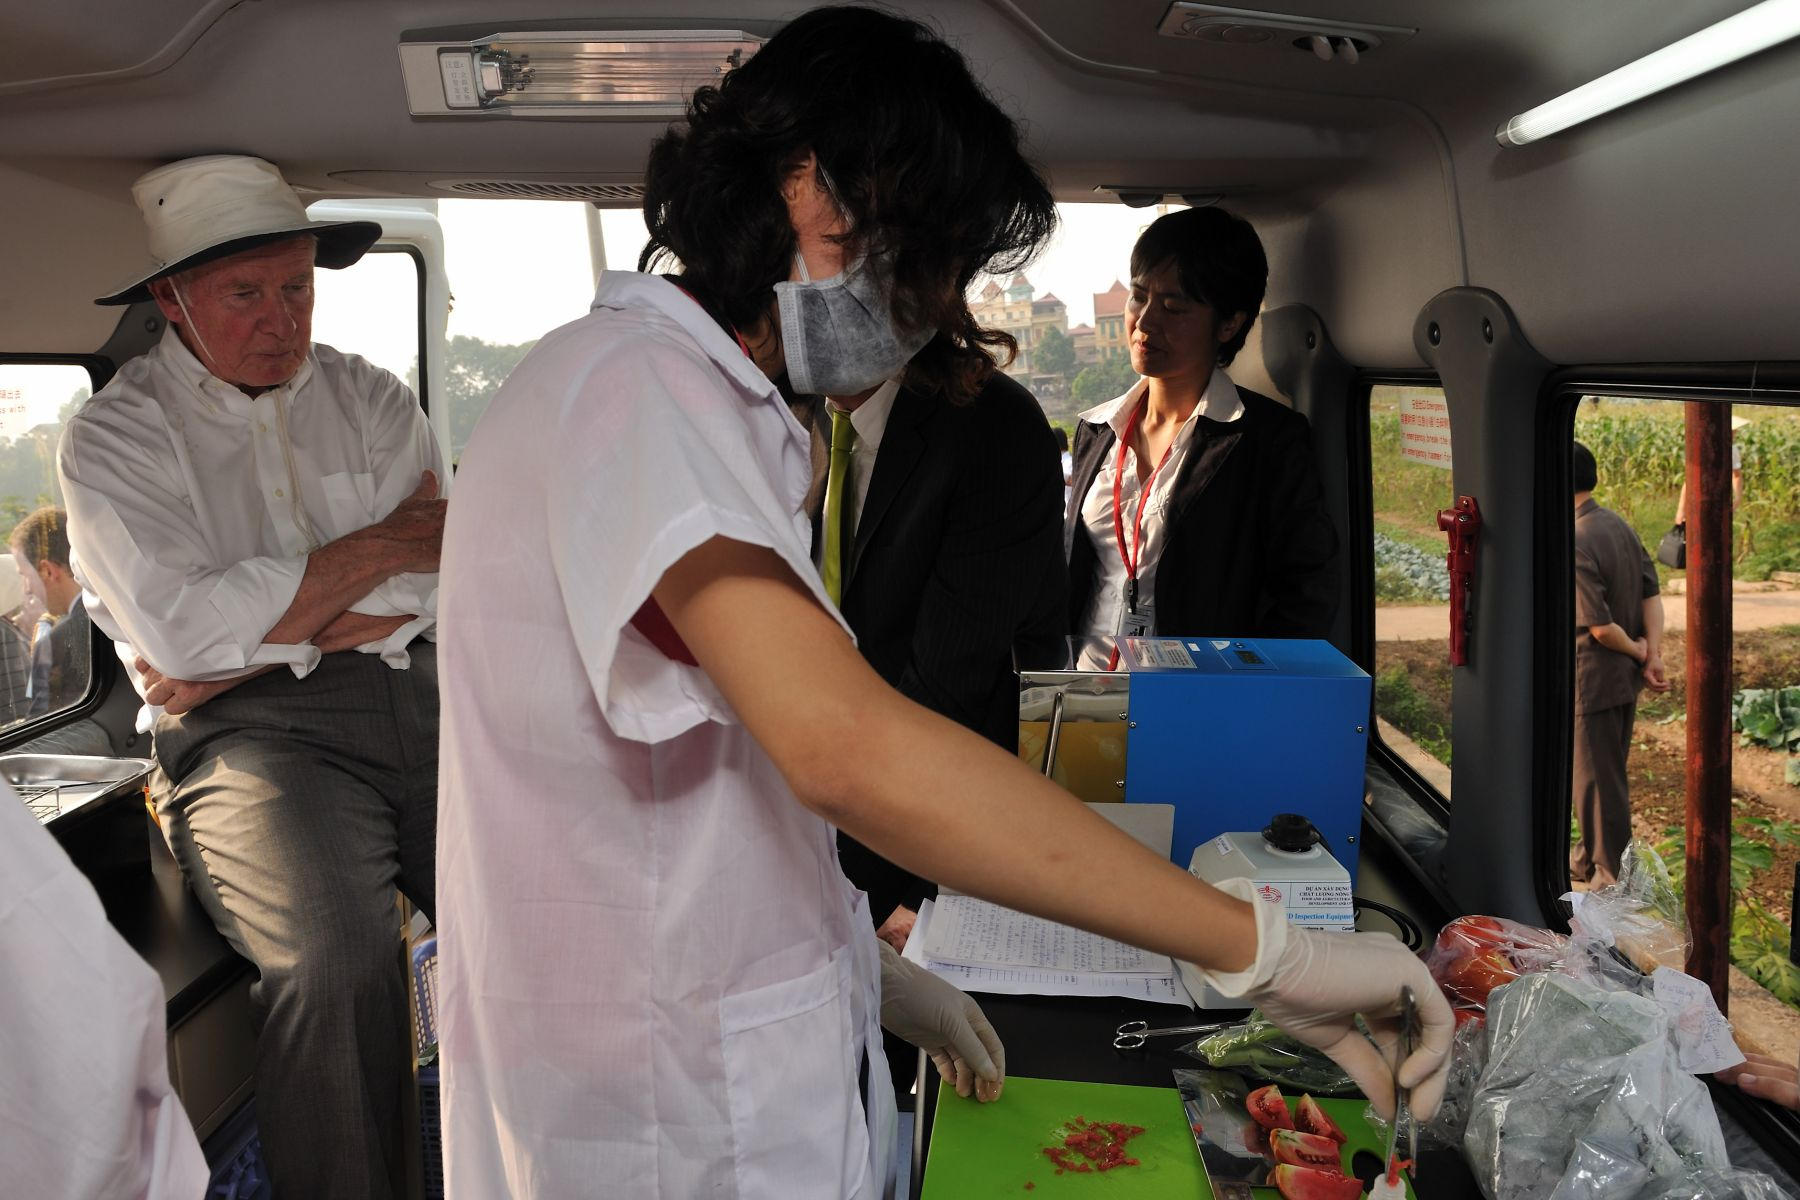 The Governor General and the Canadian delegates visited a safe vegetable production site and a mobile laboratory van.